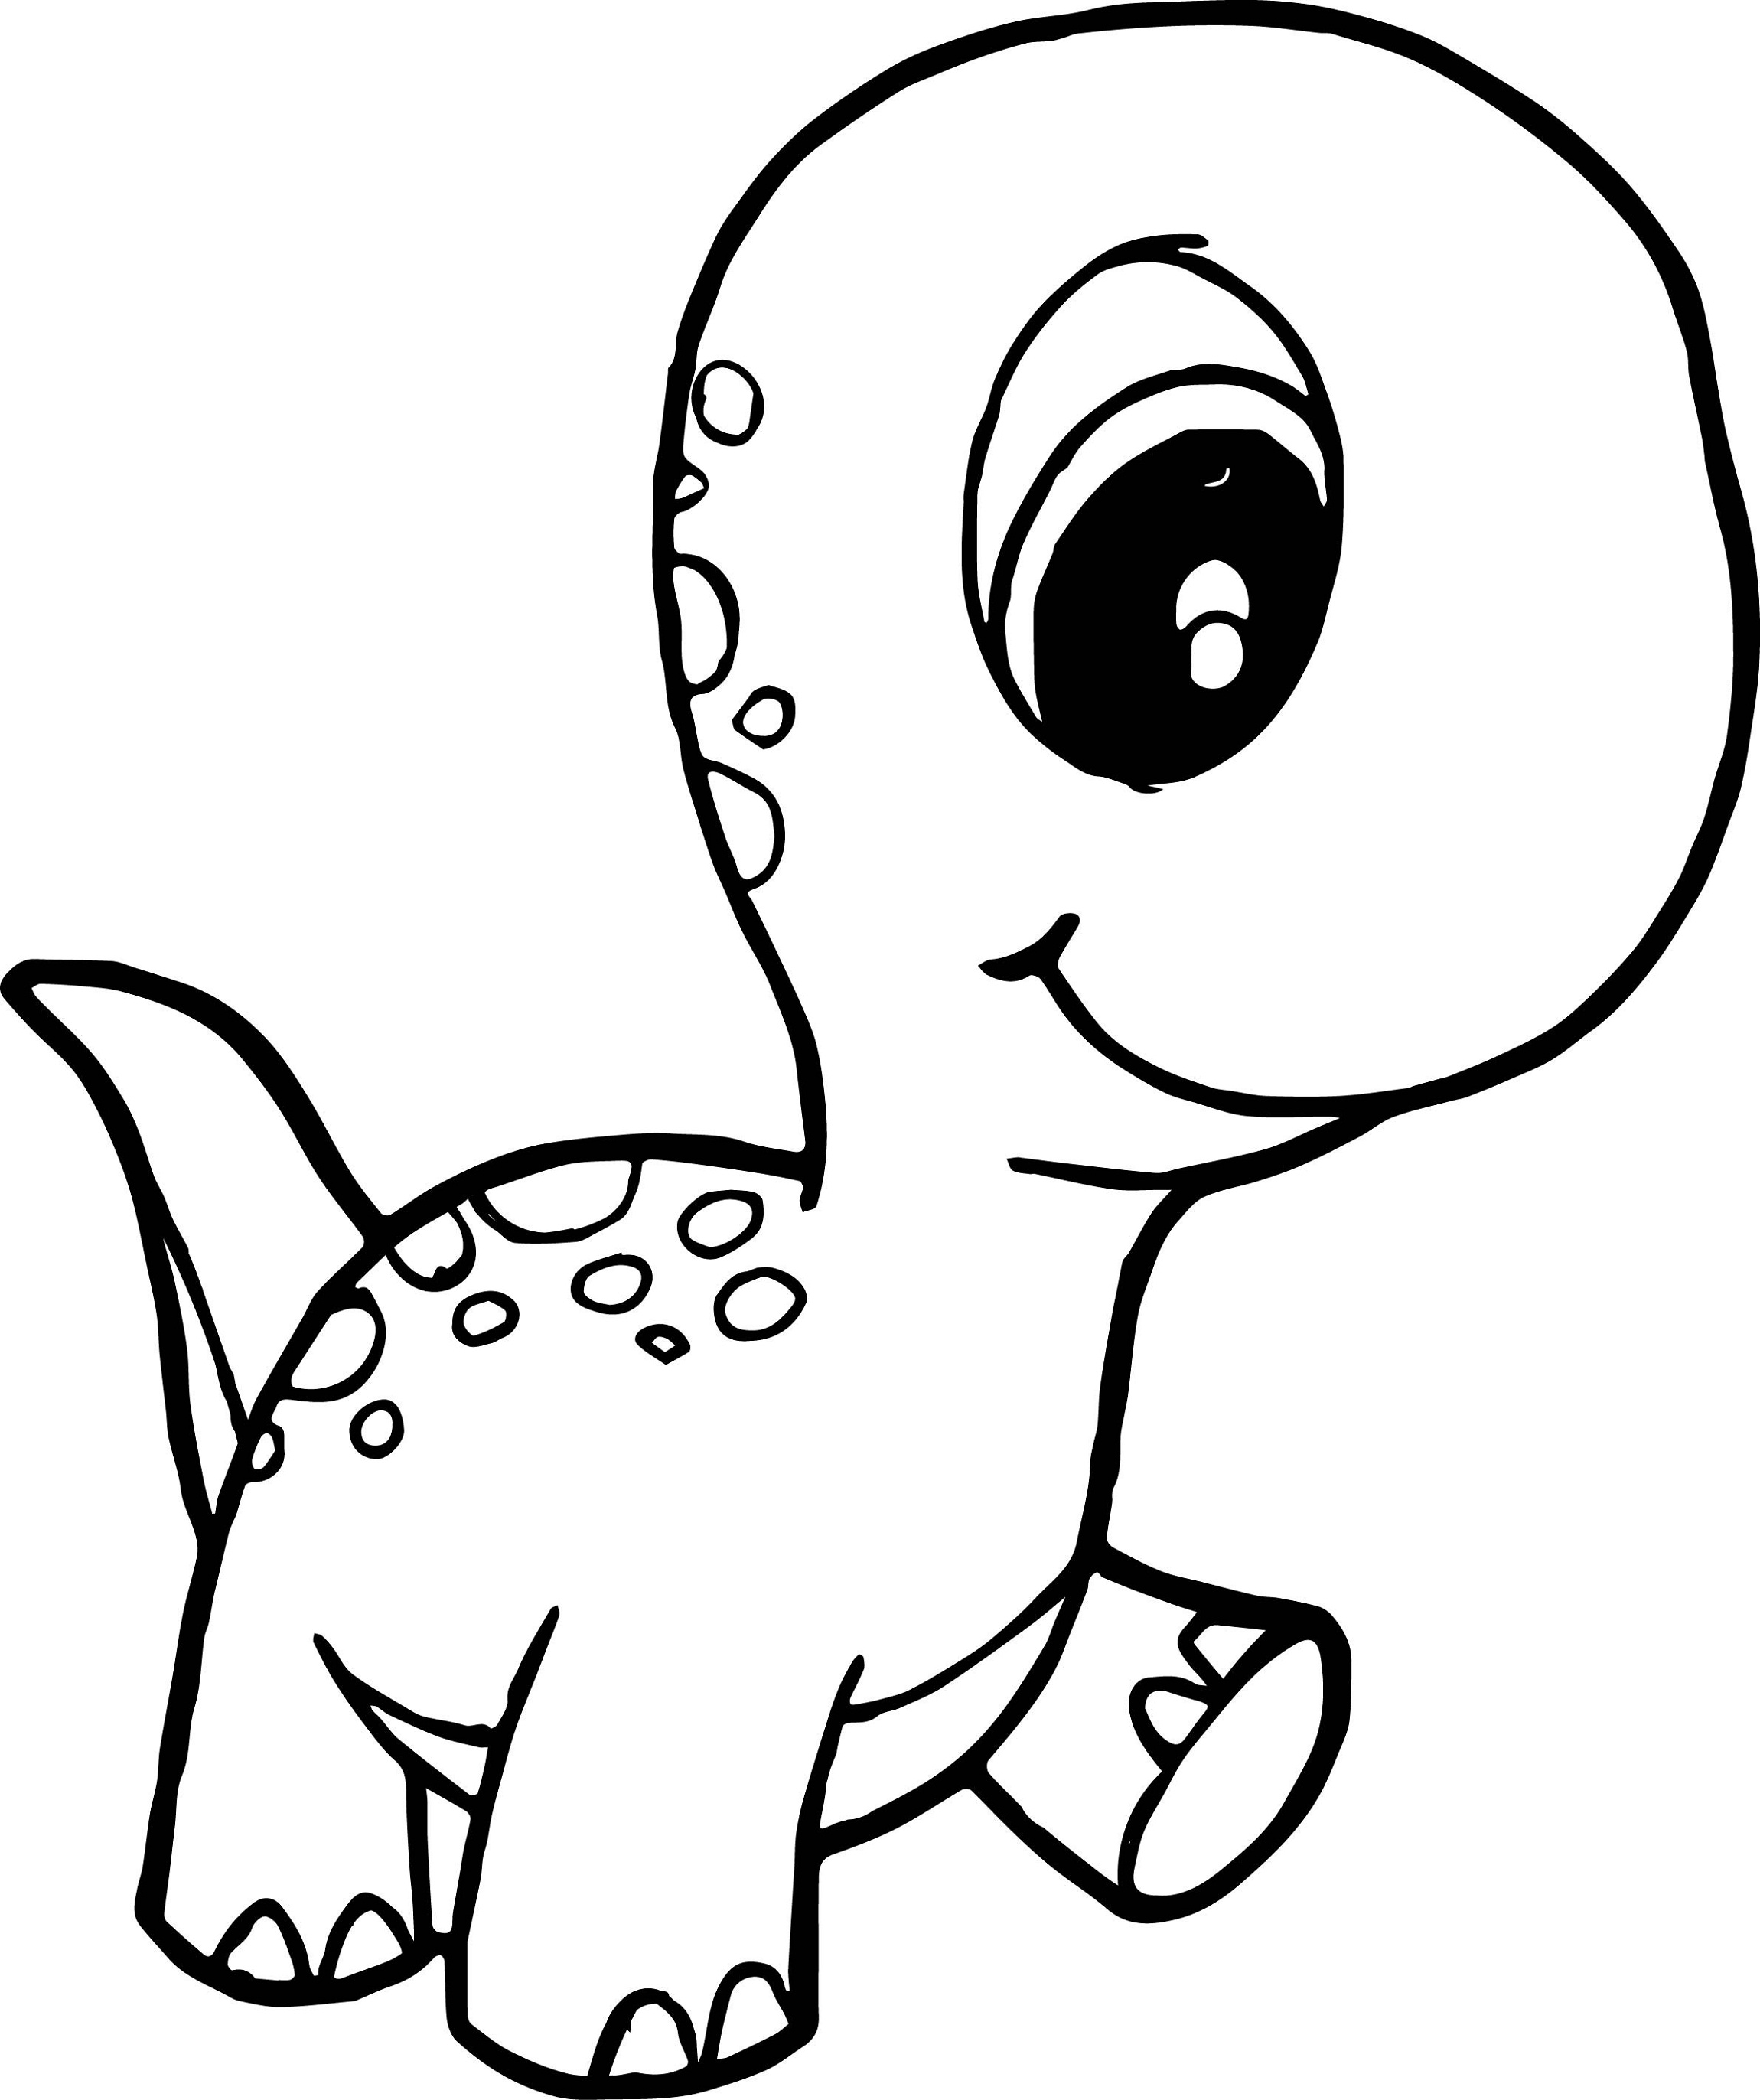 free dinosaur pictures to print and color coloring pages dinosaur free printable coloring pages free pictures color to print dinosaur and